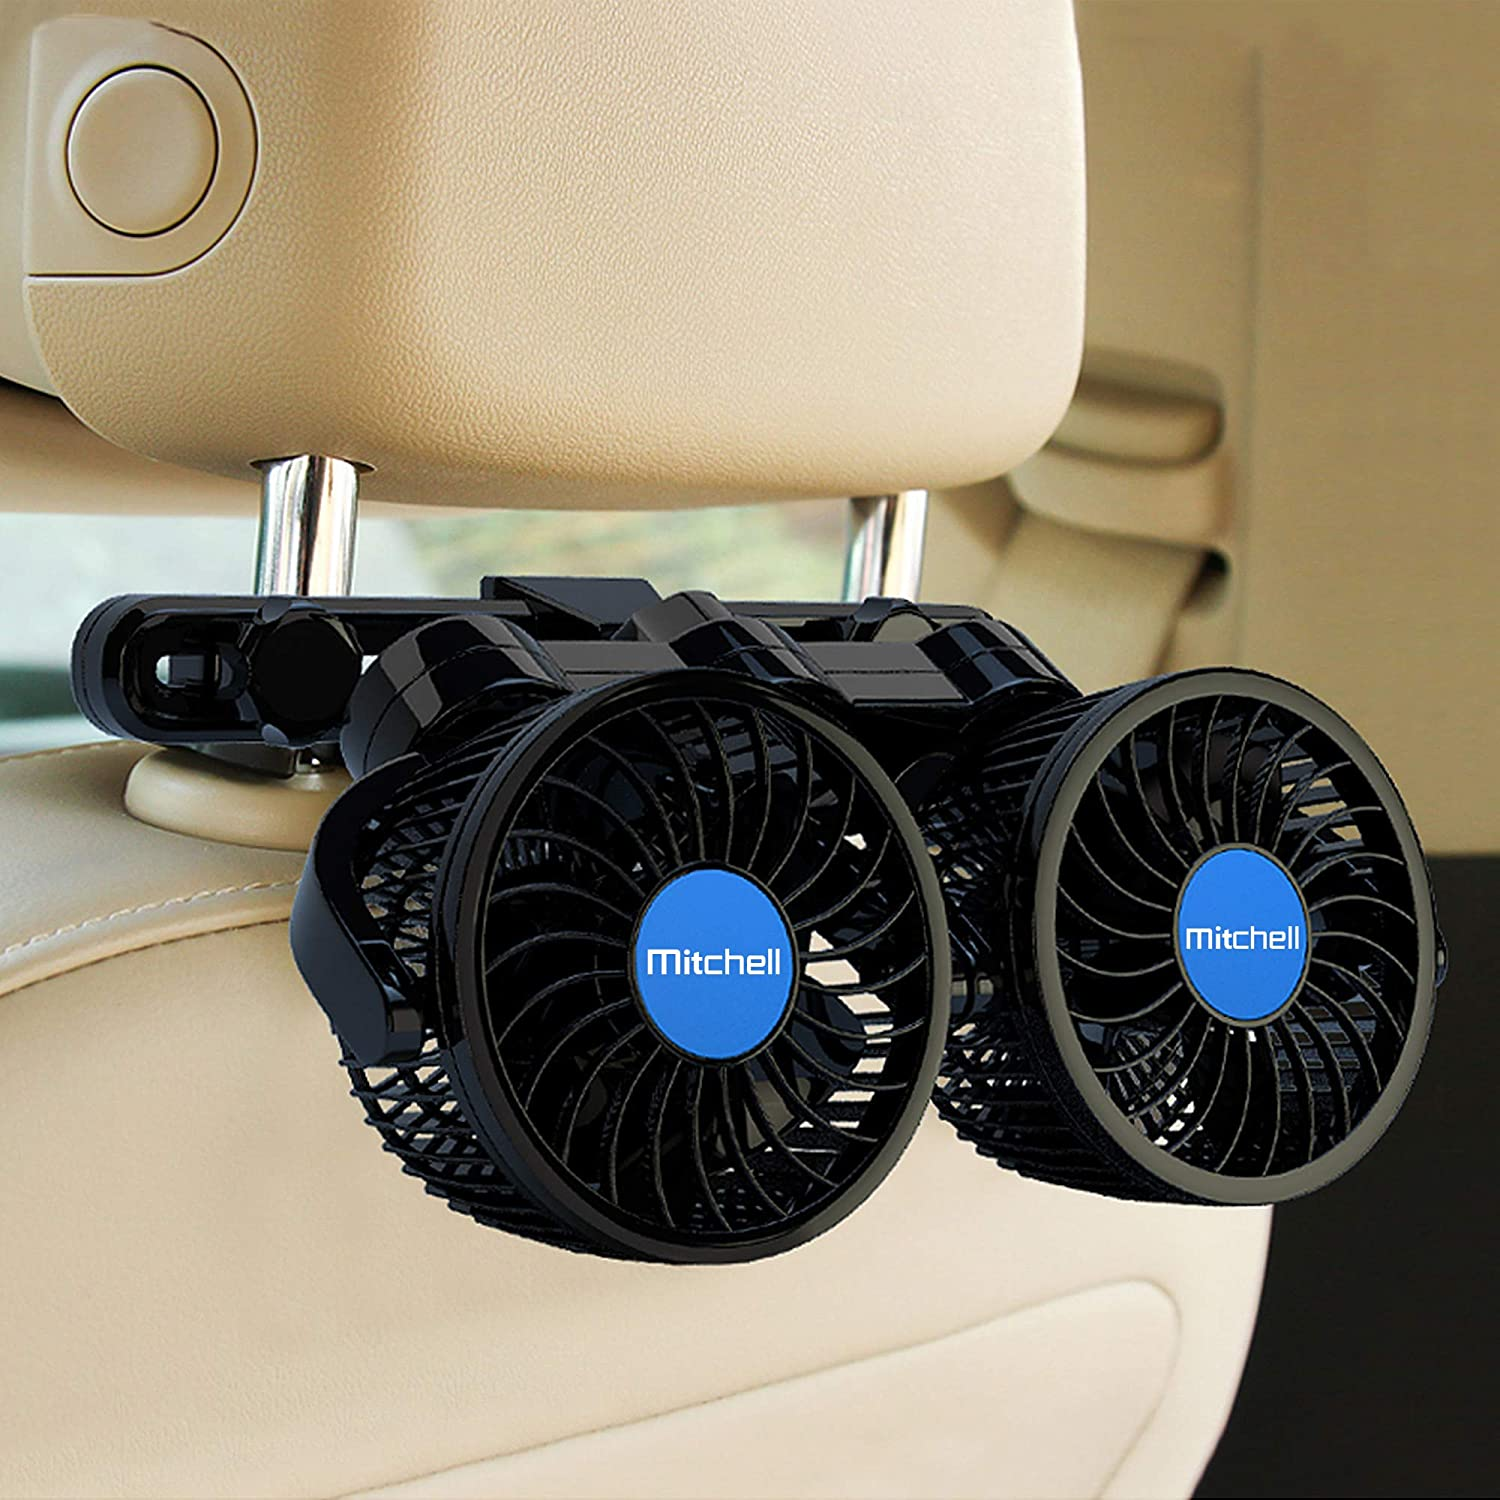 Car Fan, Electric Car Fans for Rear Seat Passenger Portable Car Seat Fan 360 Degree Dual Head Rotatable Back Seat Car Fan 12V Cooling Air Fan with Stepless Speed Regulation for SUV, RV, Van, Vehicles